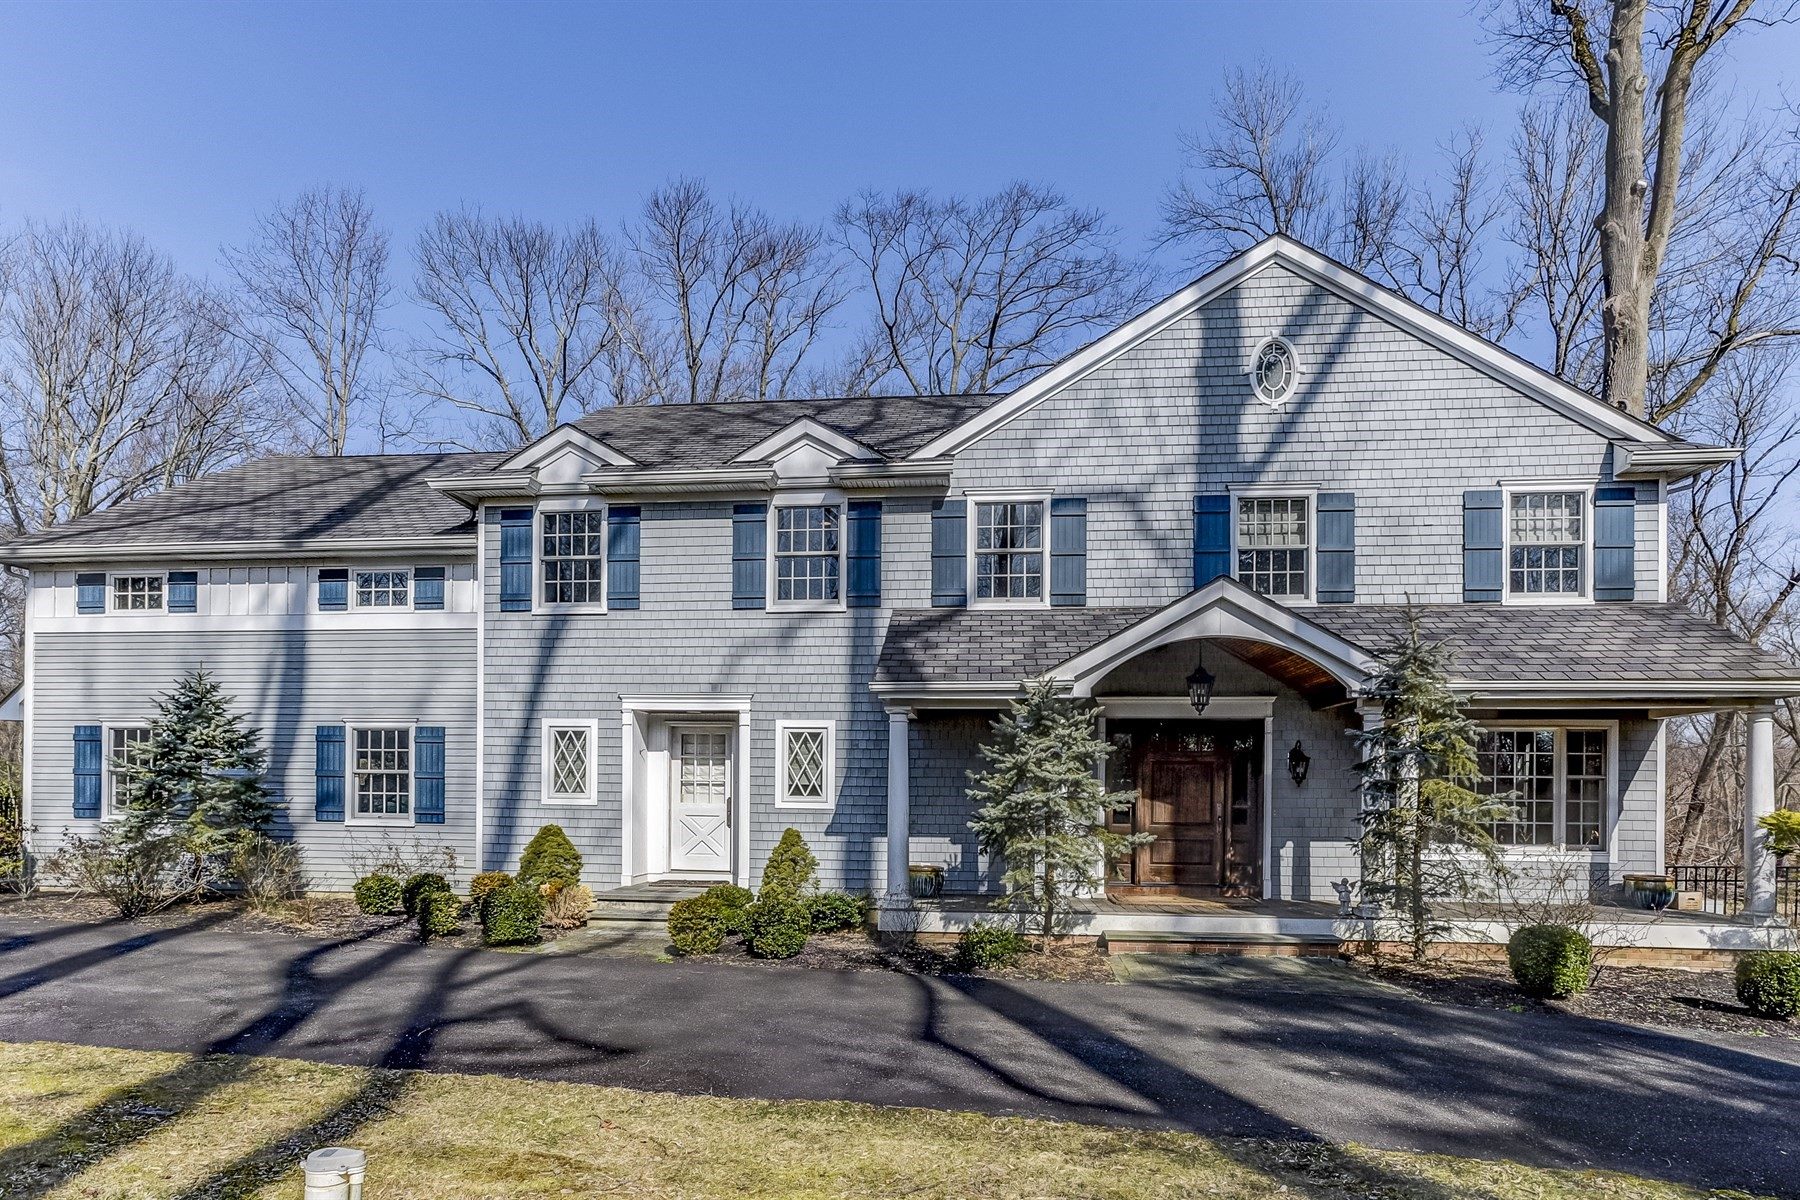 Single Family Home for Sale at Custom Built Home 92 Tulip Lane Colts Neck, 07722 United States